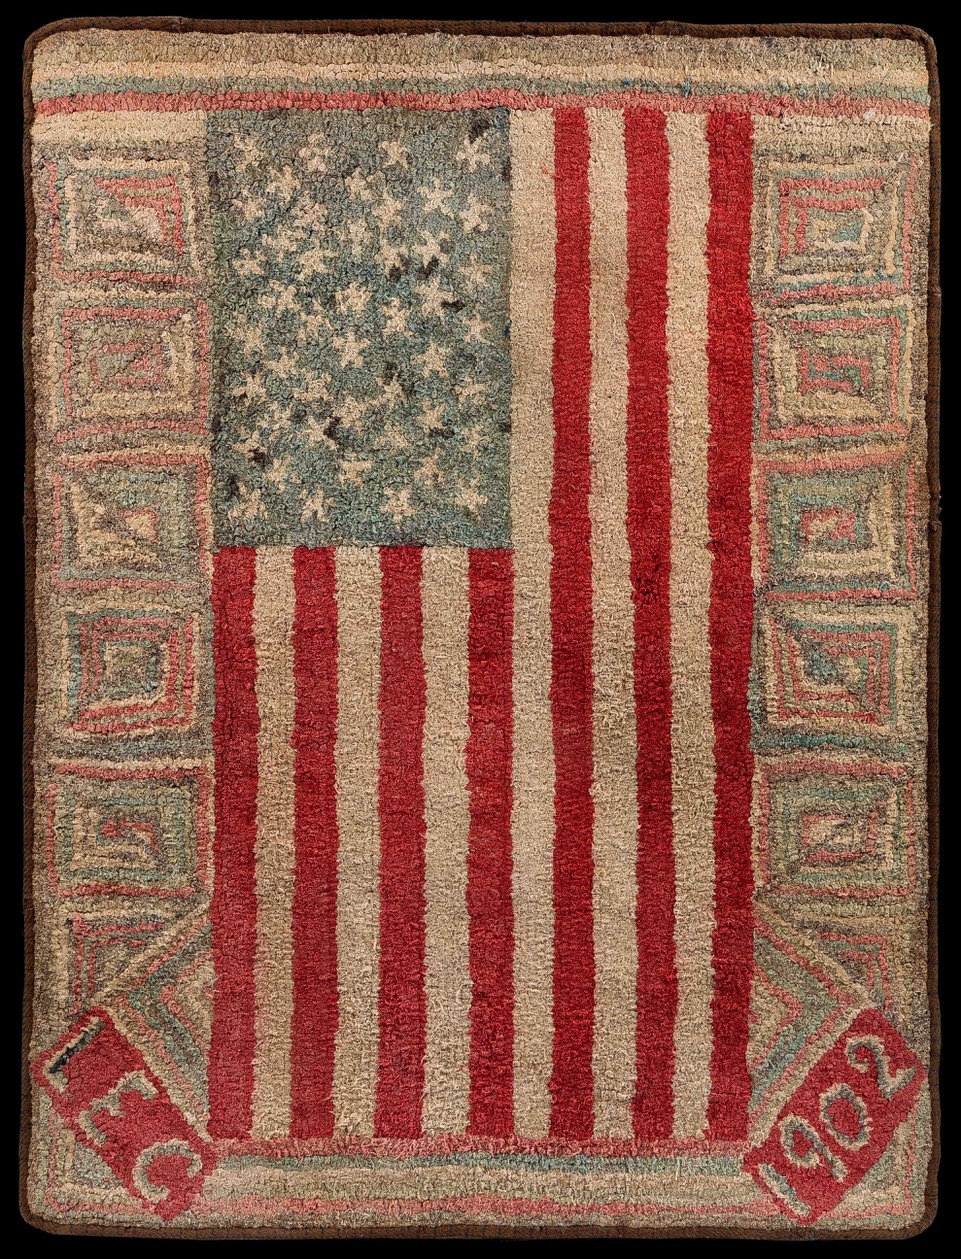 An Important Early American Flag Documented Hooked Rug, Executed By Laura  Etta Clarke, New Hampshire In 1902 U2013 Austin T. Miller